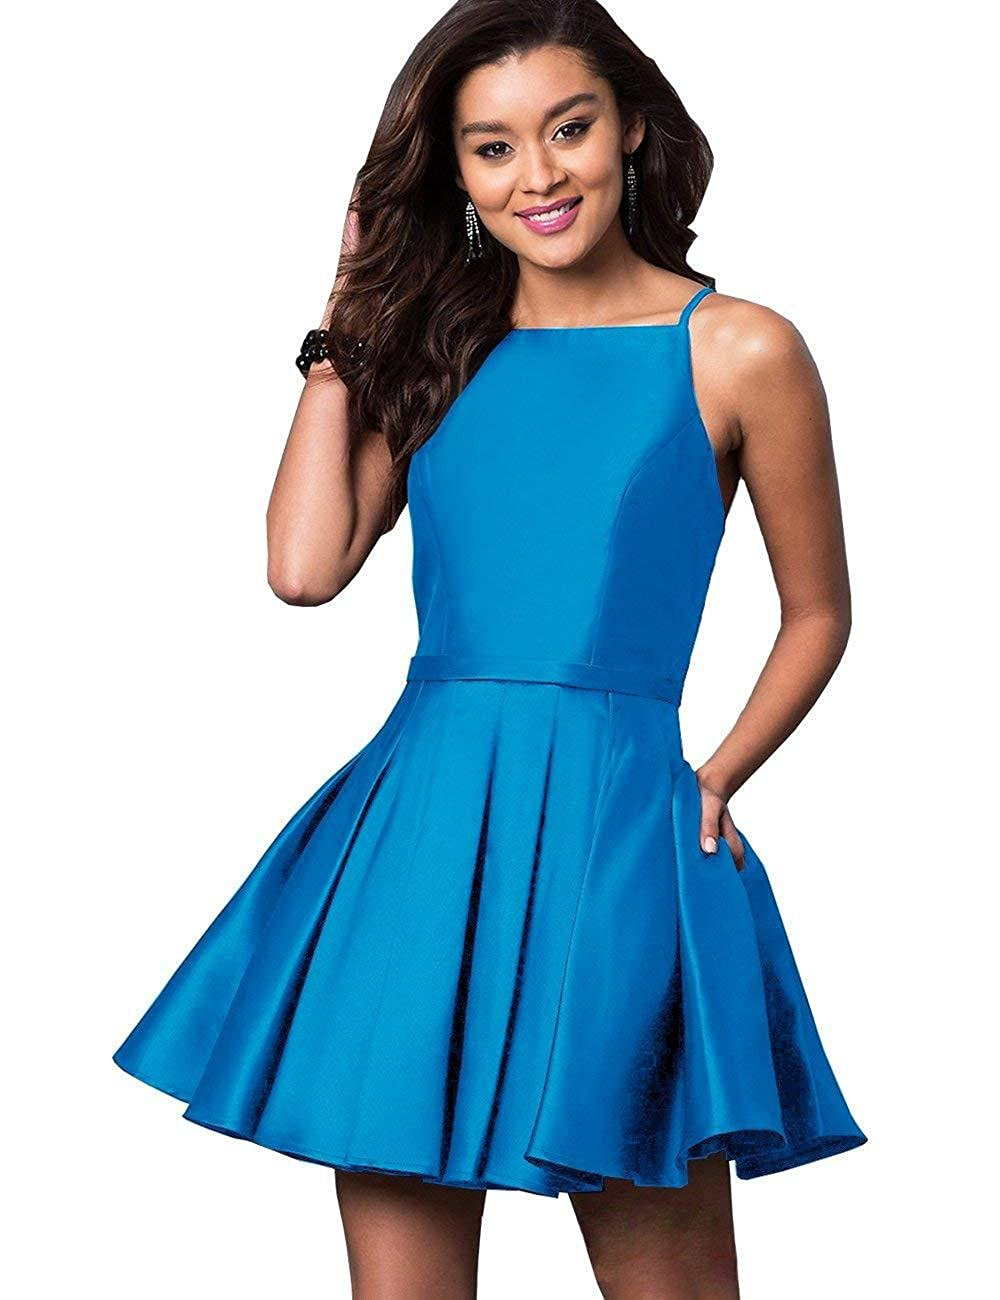 bluee NewFex Homecoming Dresses Satin Spaghetti Strap 2018 Aline Short Prom Gown with Pockets